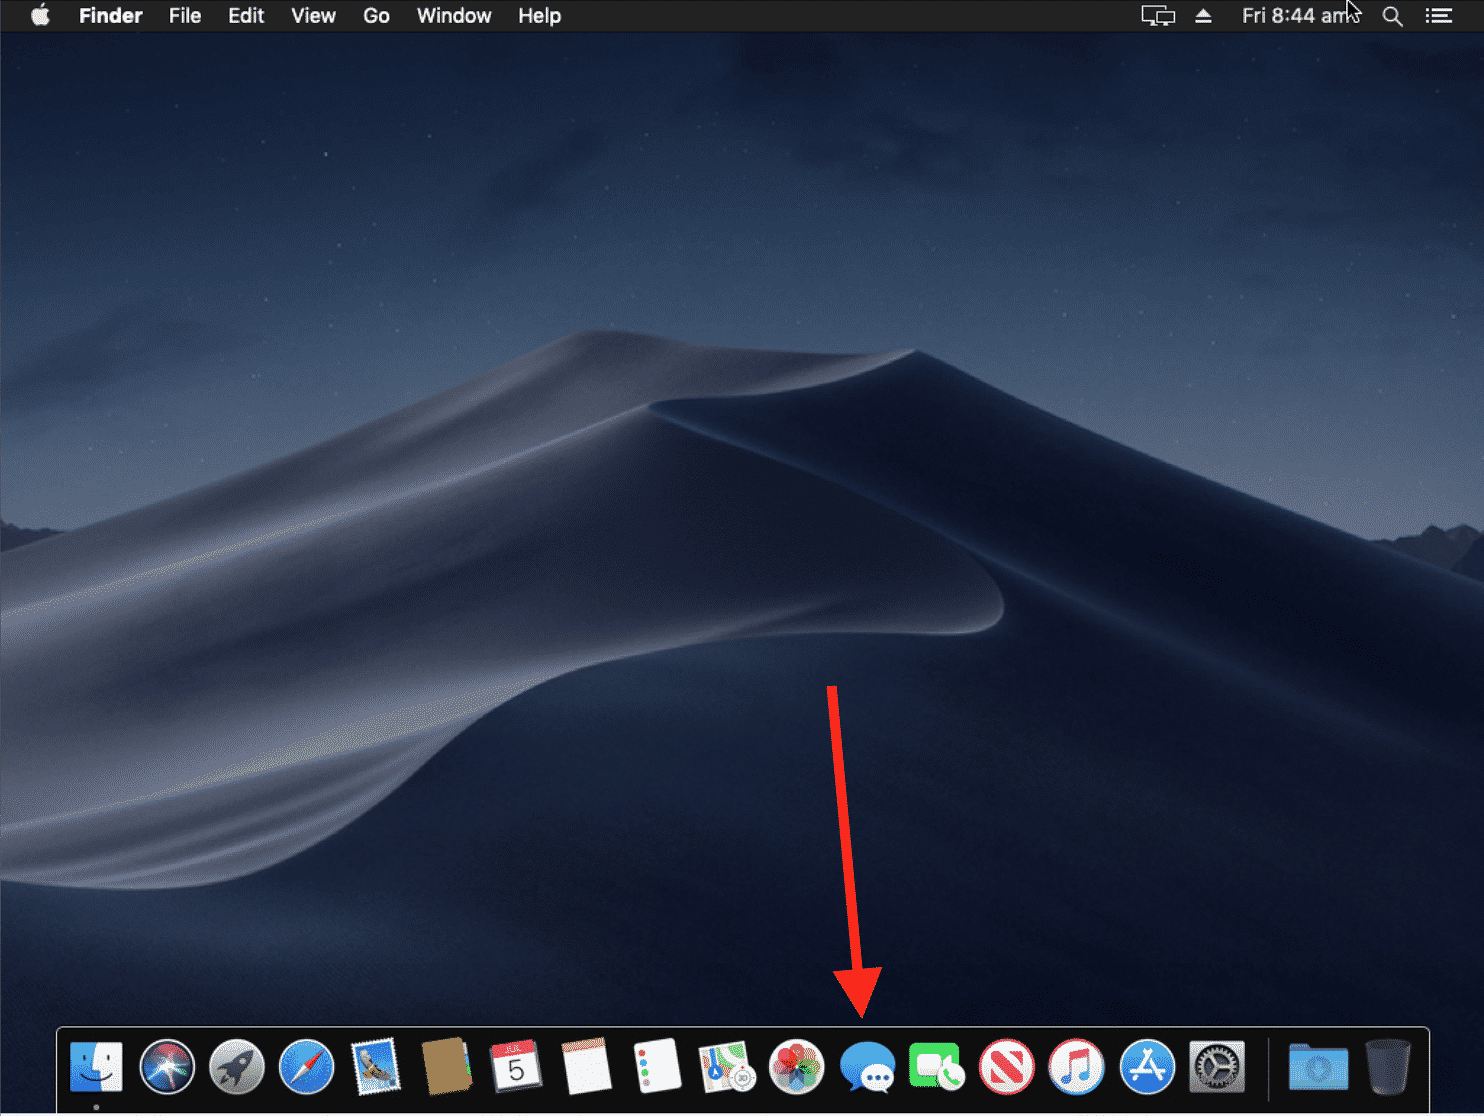 Messages icon on macOS Mojave to get iMessage on PC